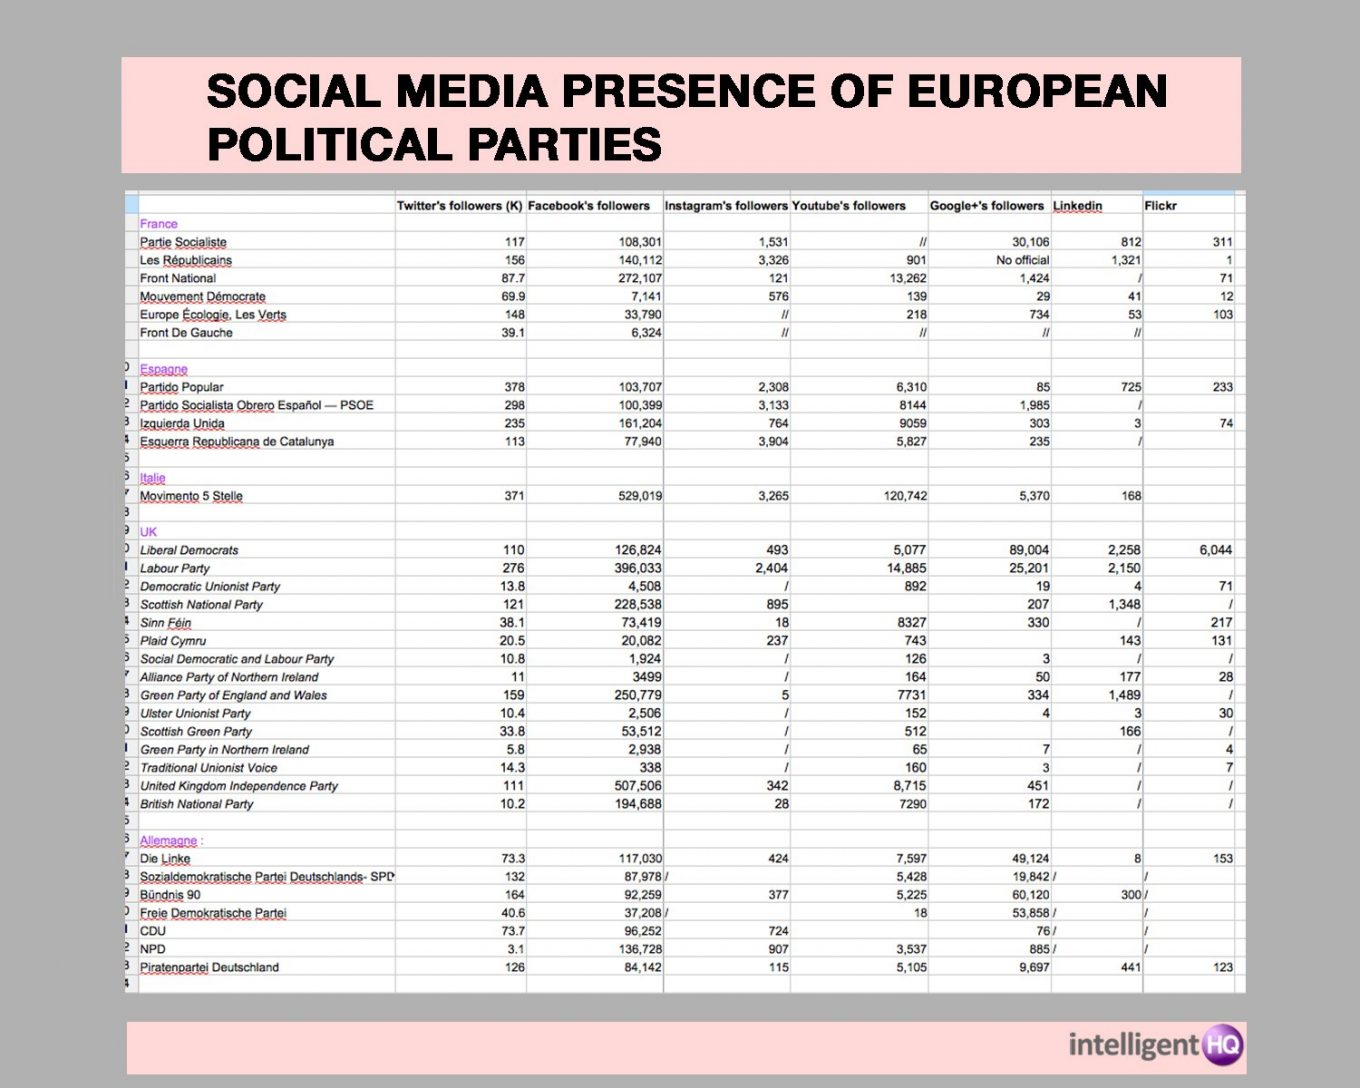 Social Media Presence of a Group of European Political Parties